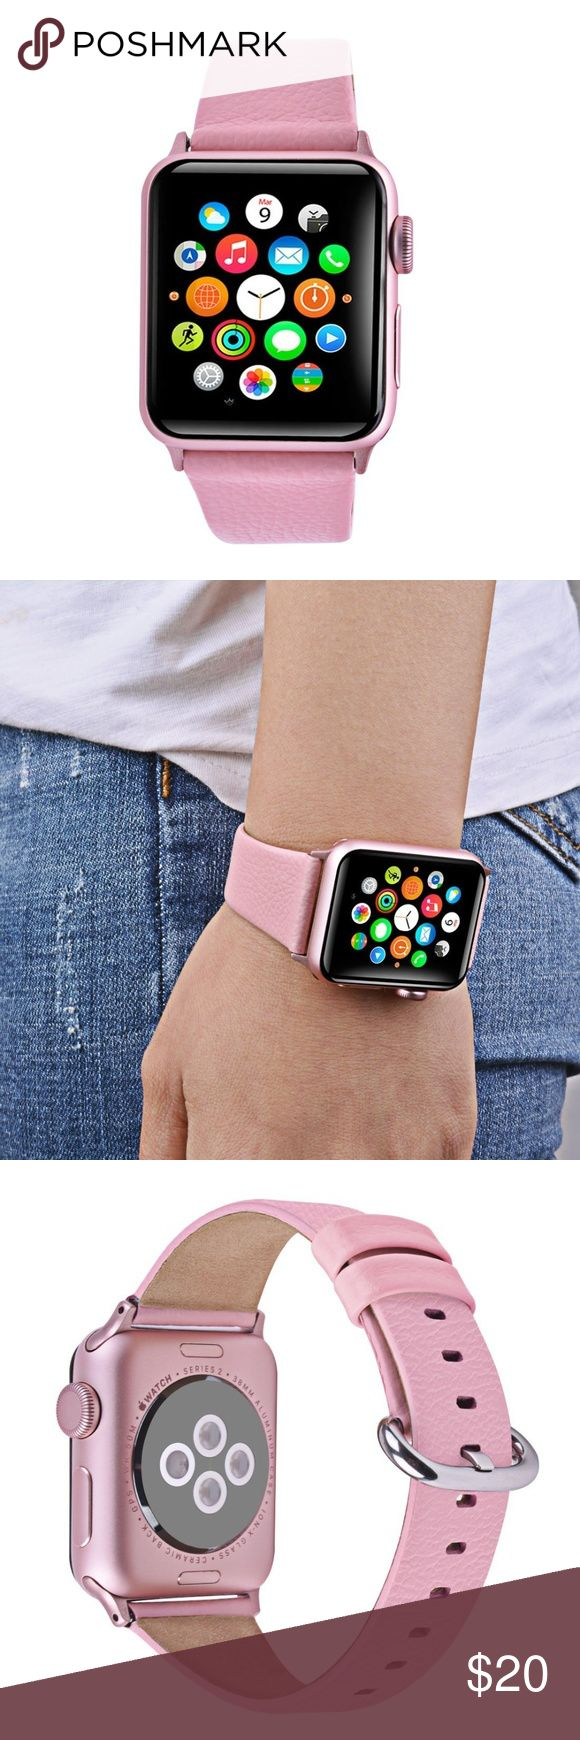 """Apple Watch Band,  Premium Genuine Leather *This is for the band only* Apple watch band 38mm - fit for Apple Watch Series 3 Series 2 Series  1 sport & edition all versions, for wrists 145mm - 200mm (approx. 5.6""""inch - 7.8""""inch) Real cowhide leather-  This iwatch band is manufactured by manual with the high quality cow genuine leather. Extra soft when wearing Litchi grain apple watch bands- visibility litchi grain on the surface of band makes your apple watch more charming and gorgeous Luxury…"""